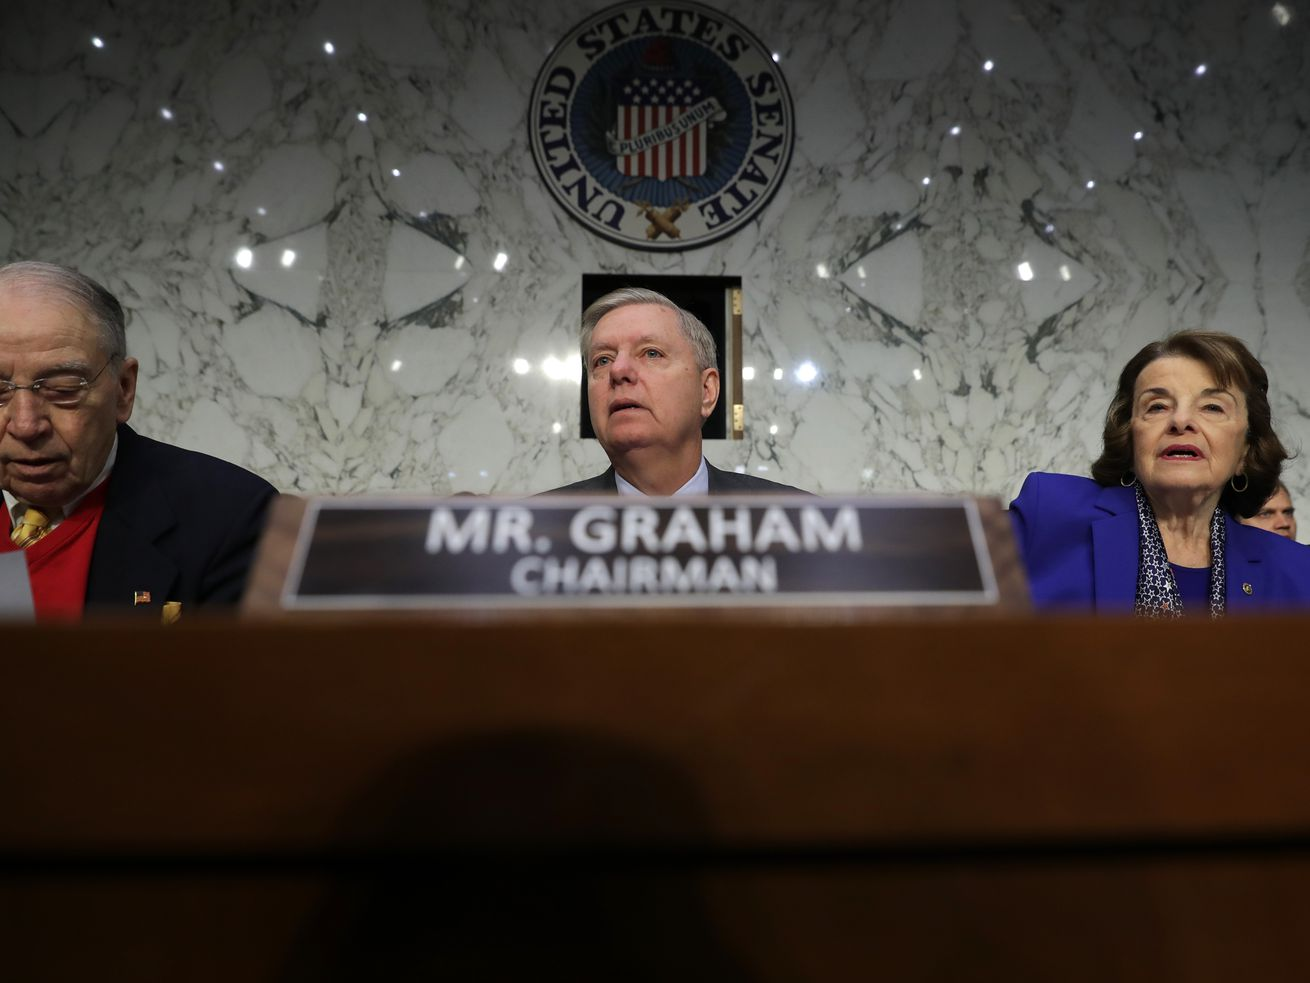 Senate Judiciary Committee Chair Lindsey Graham (R-SC) awaits the start of the confirmation hearing of attorney general nominee William Barr on January 15, 2019, in Washington, DC.